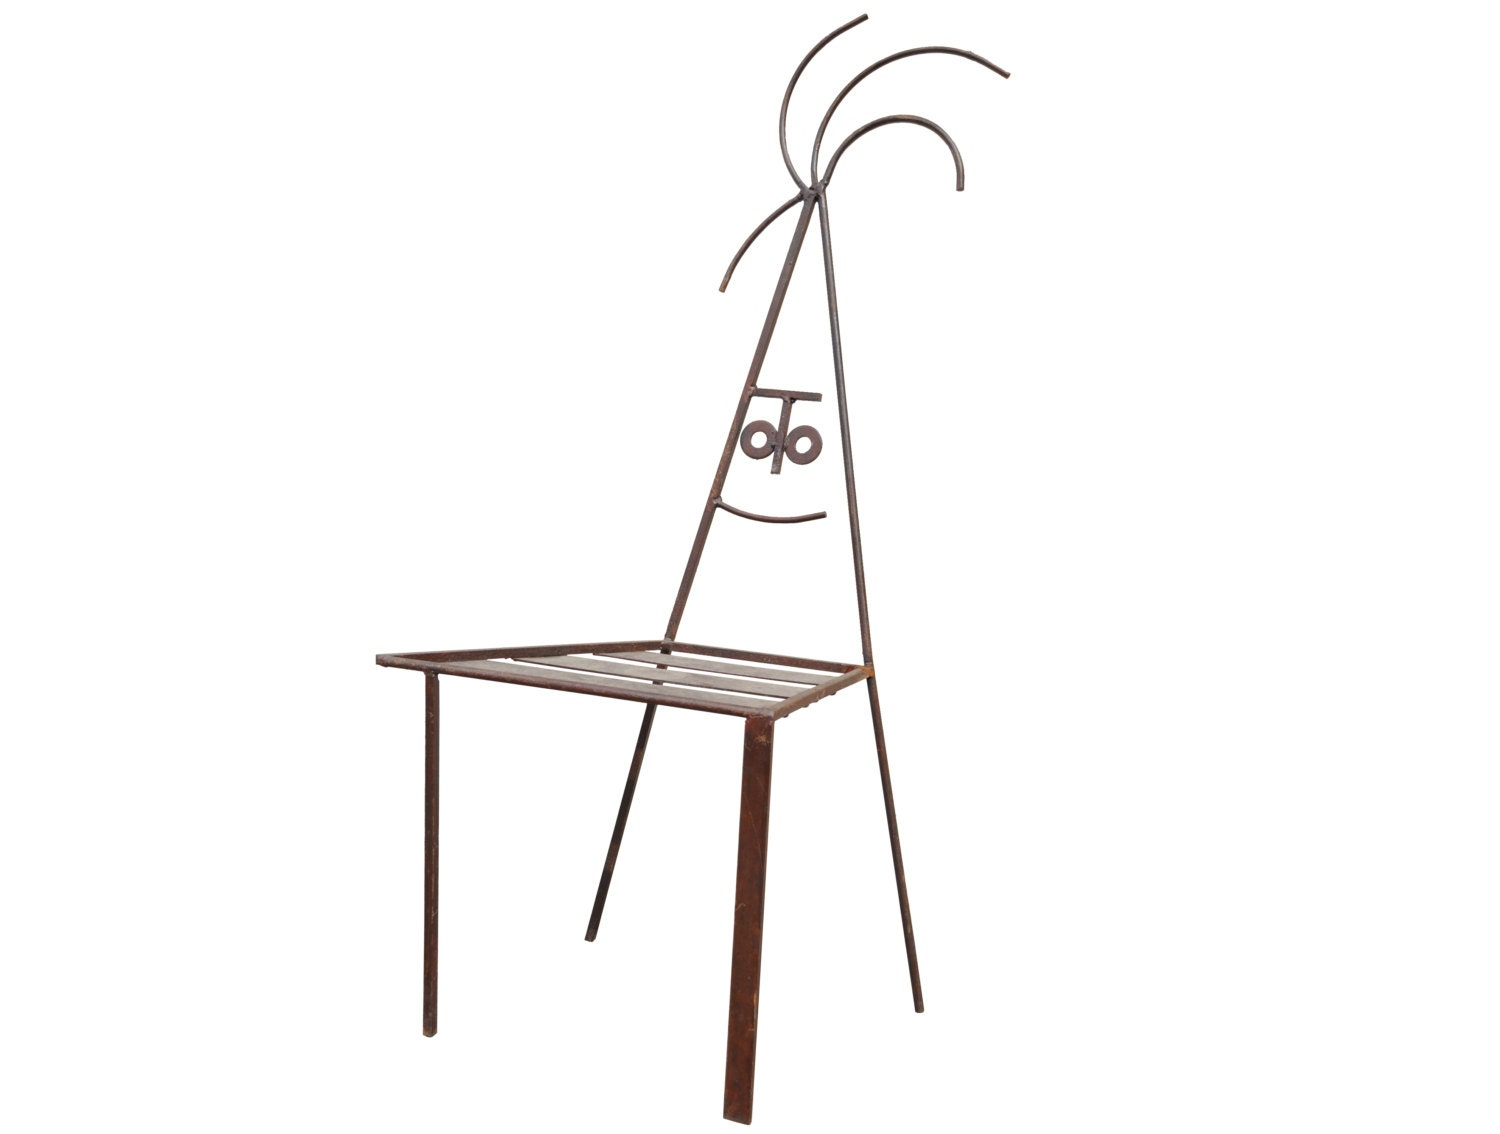 Modern style hand crafted wrought iron stick figure face patio chair a